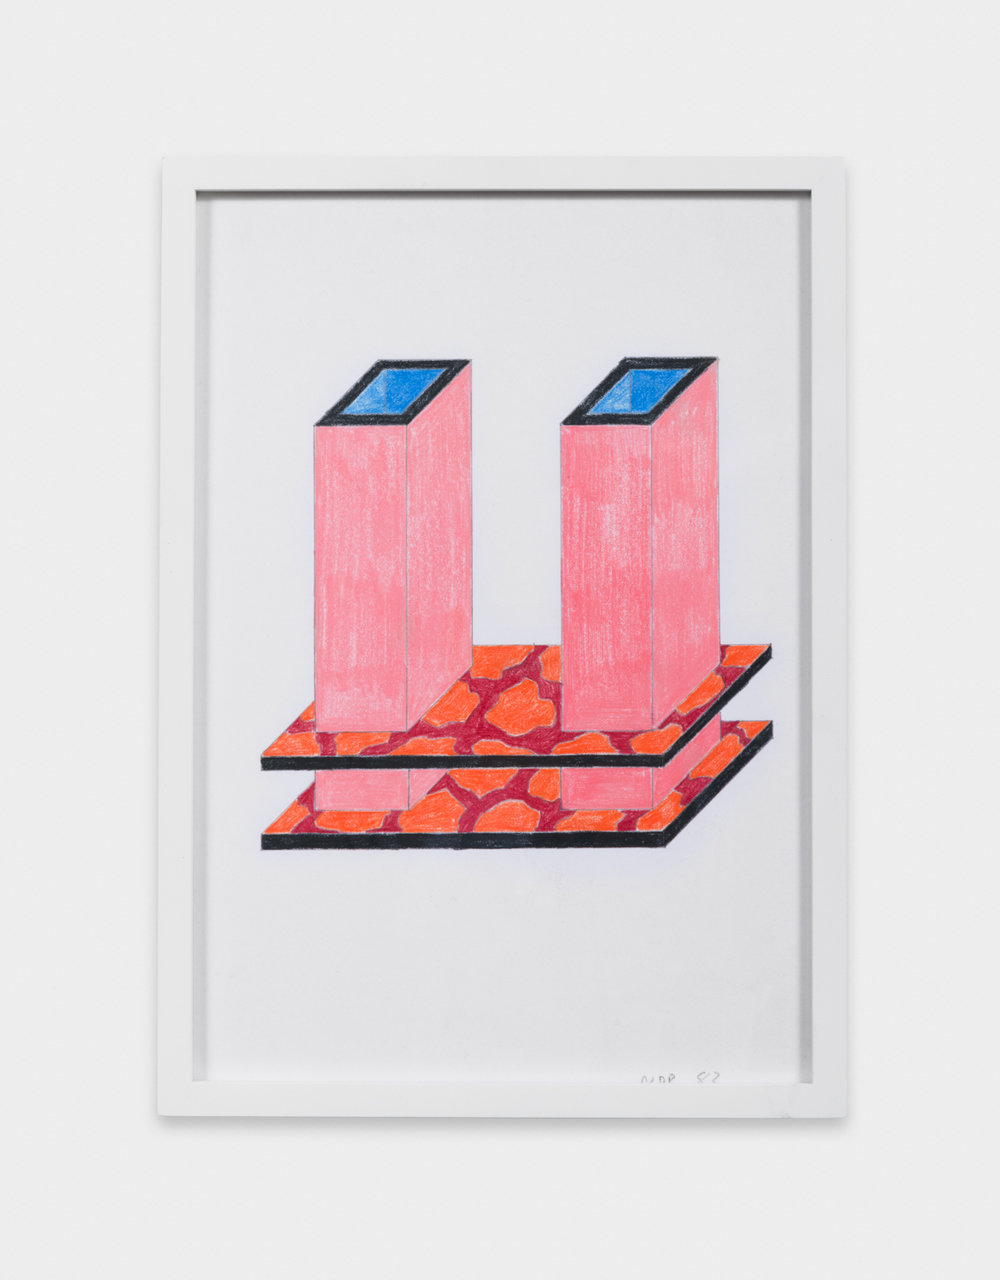 Nathalie Du Pasquier  Project for a vase for two flowers , 1983 Color crayon on paper 12 1/4 x 8 3/4 in ND004